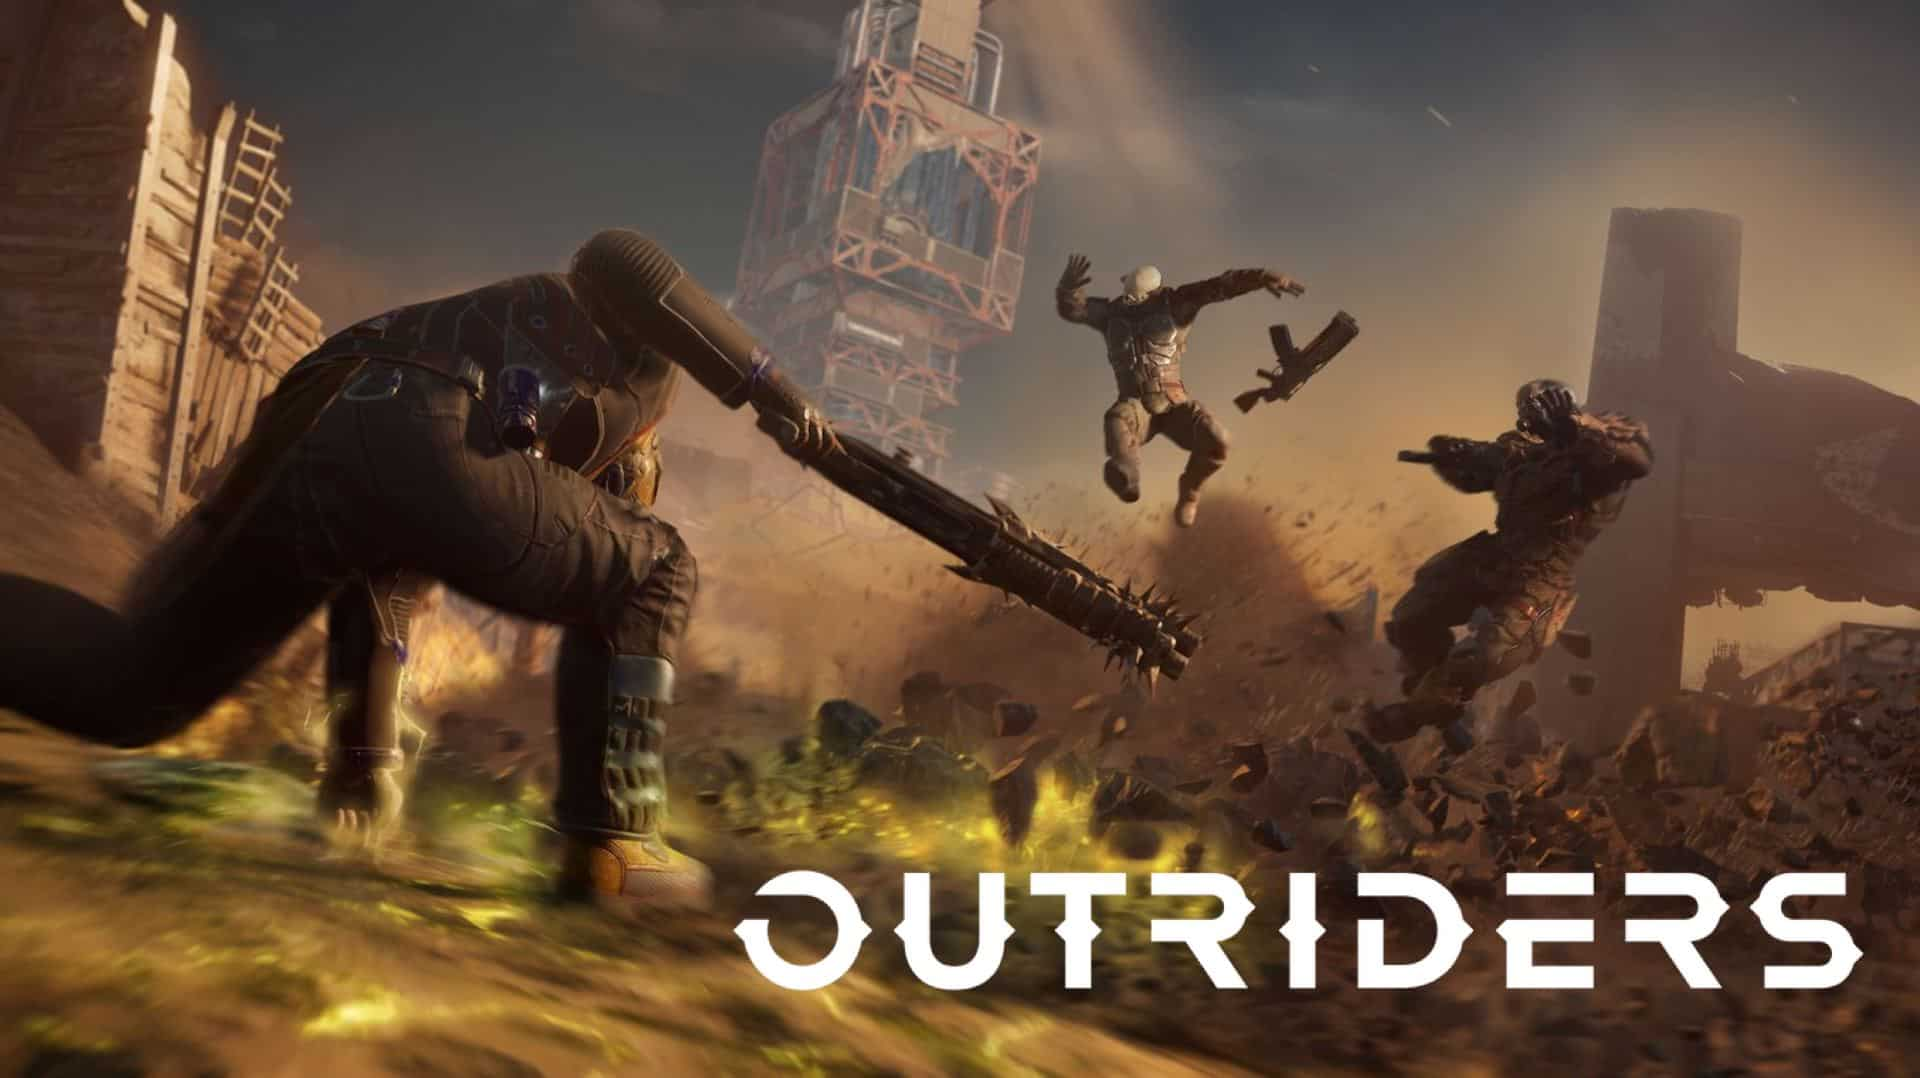 Our Initial Thoughts on the Outriders Demo